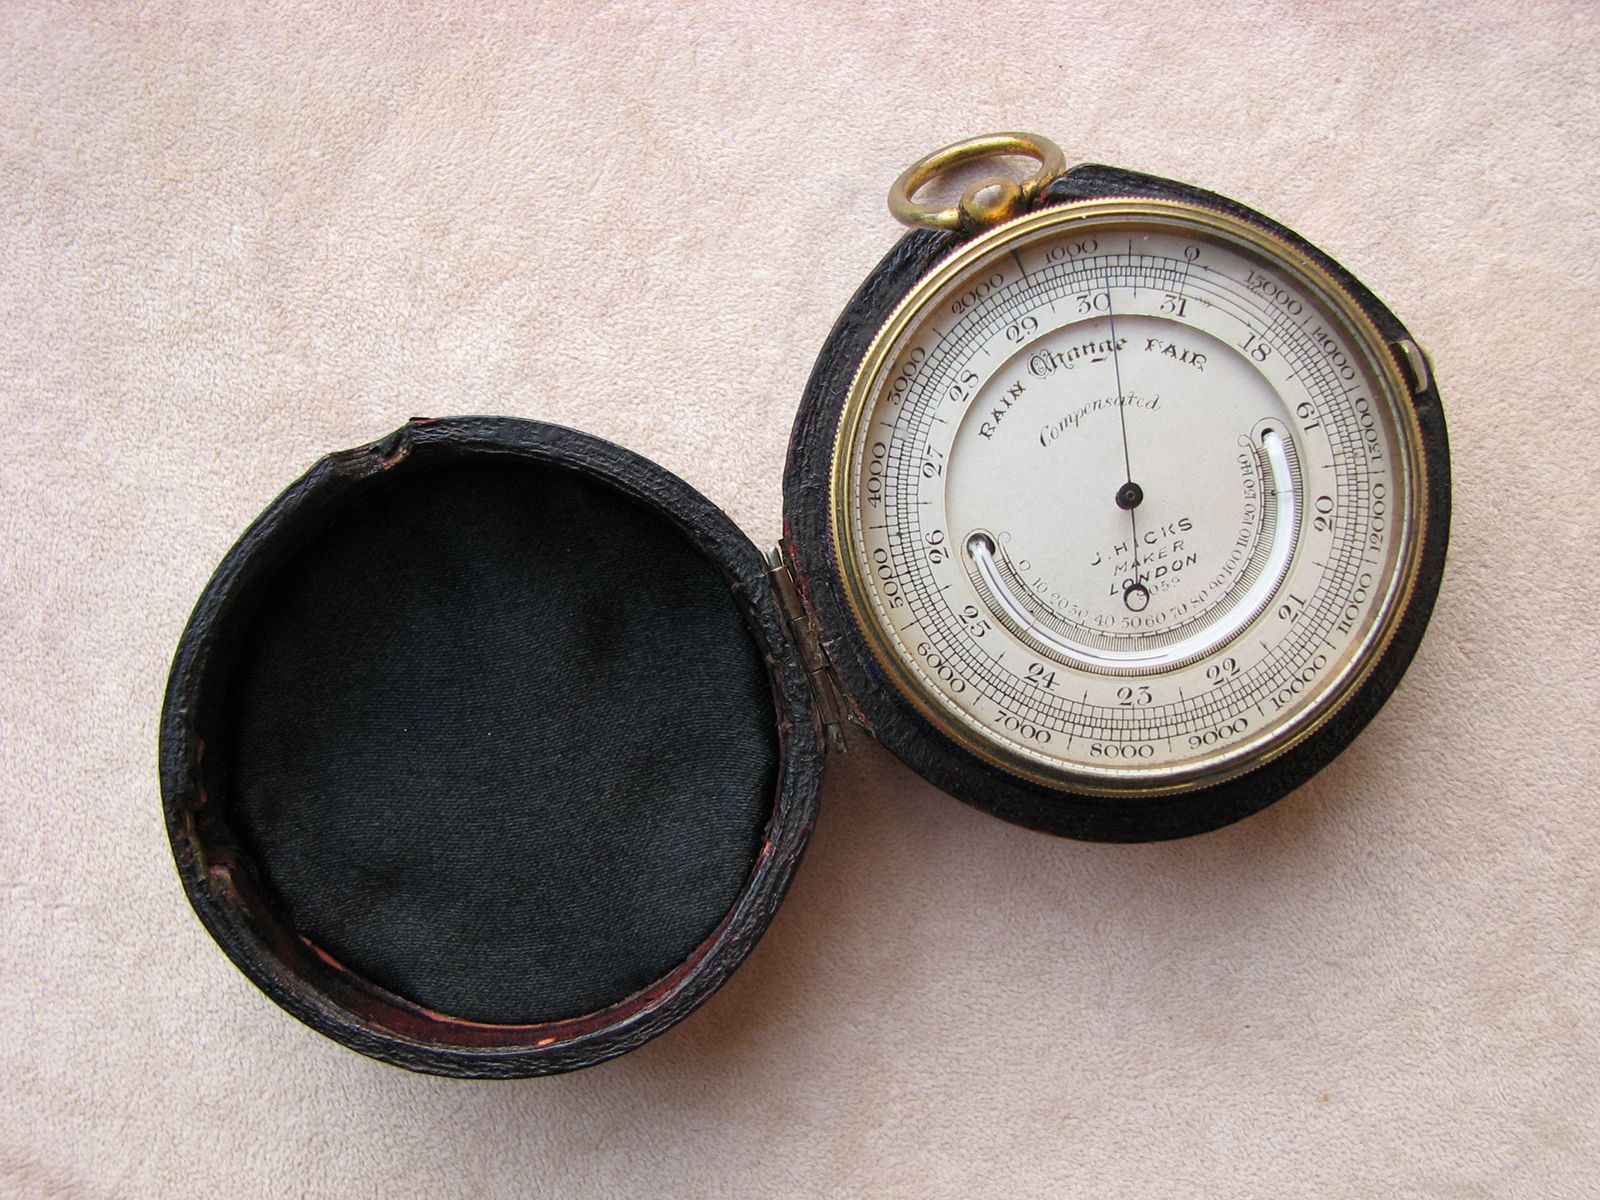 19th century J. Hicks pocket barometer and altimeter with case